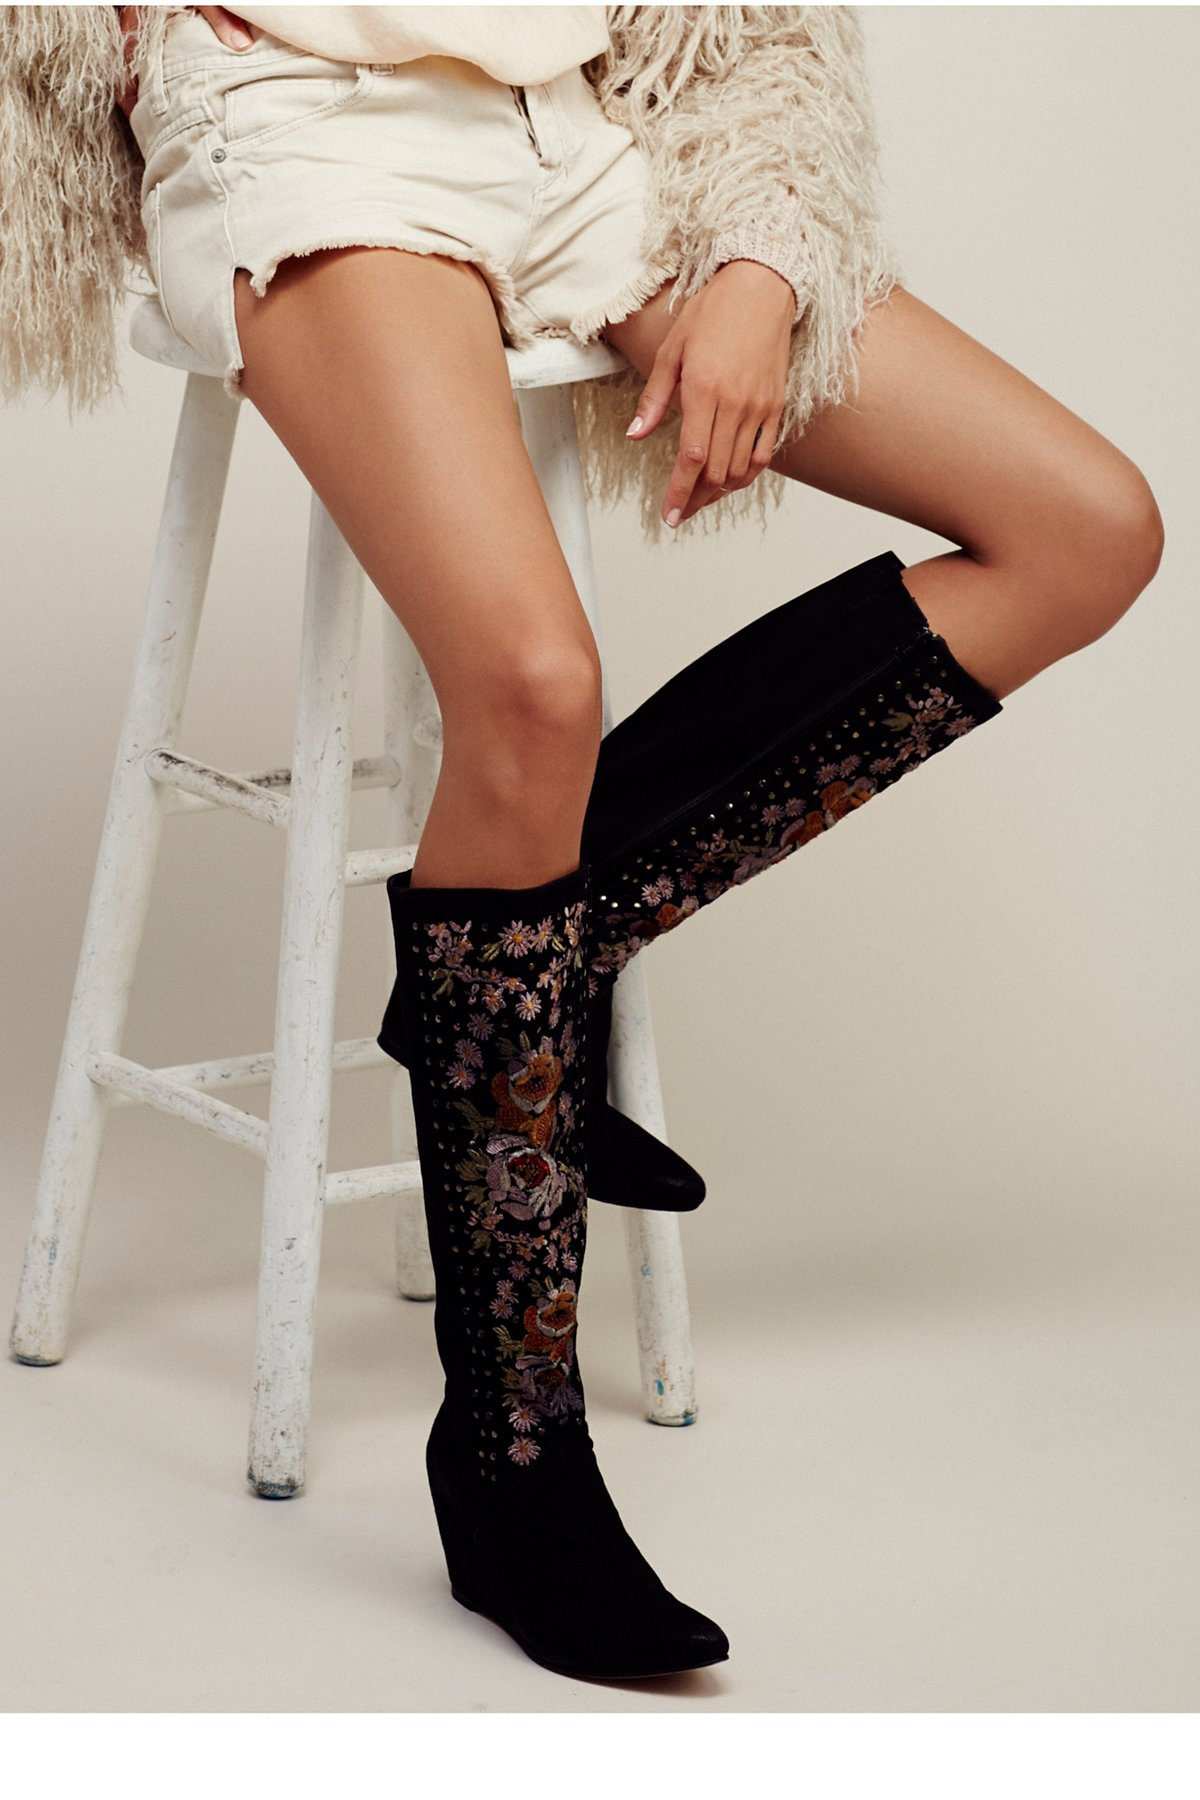 Penny Lane Tall Boot